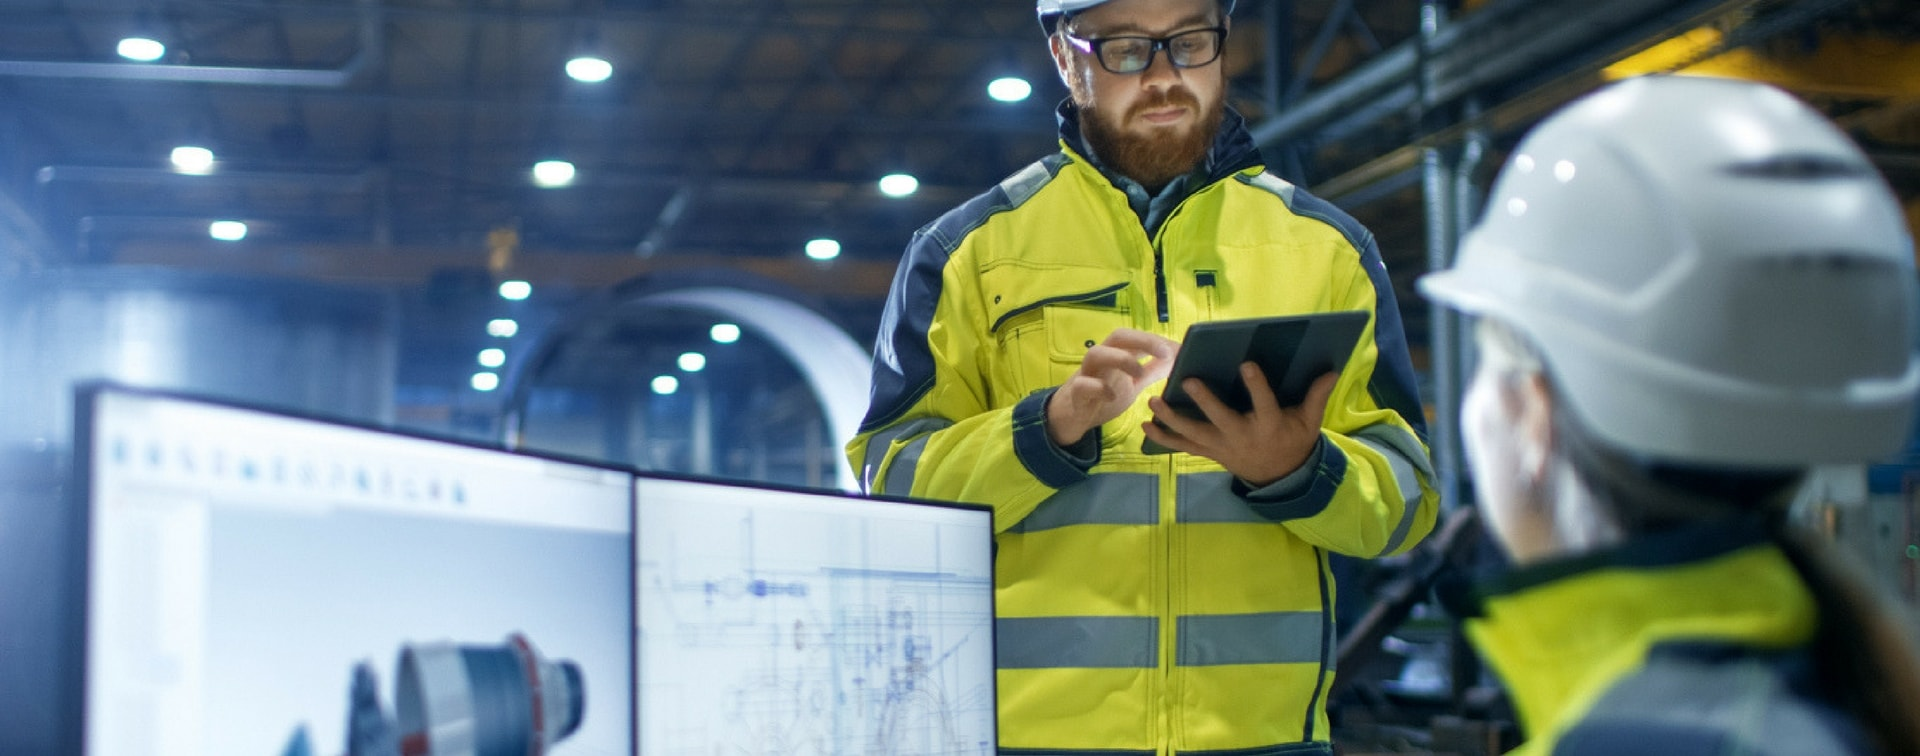 How Manufacturers Reduce Unplanned Downtime with Simulation Software